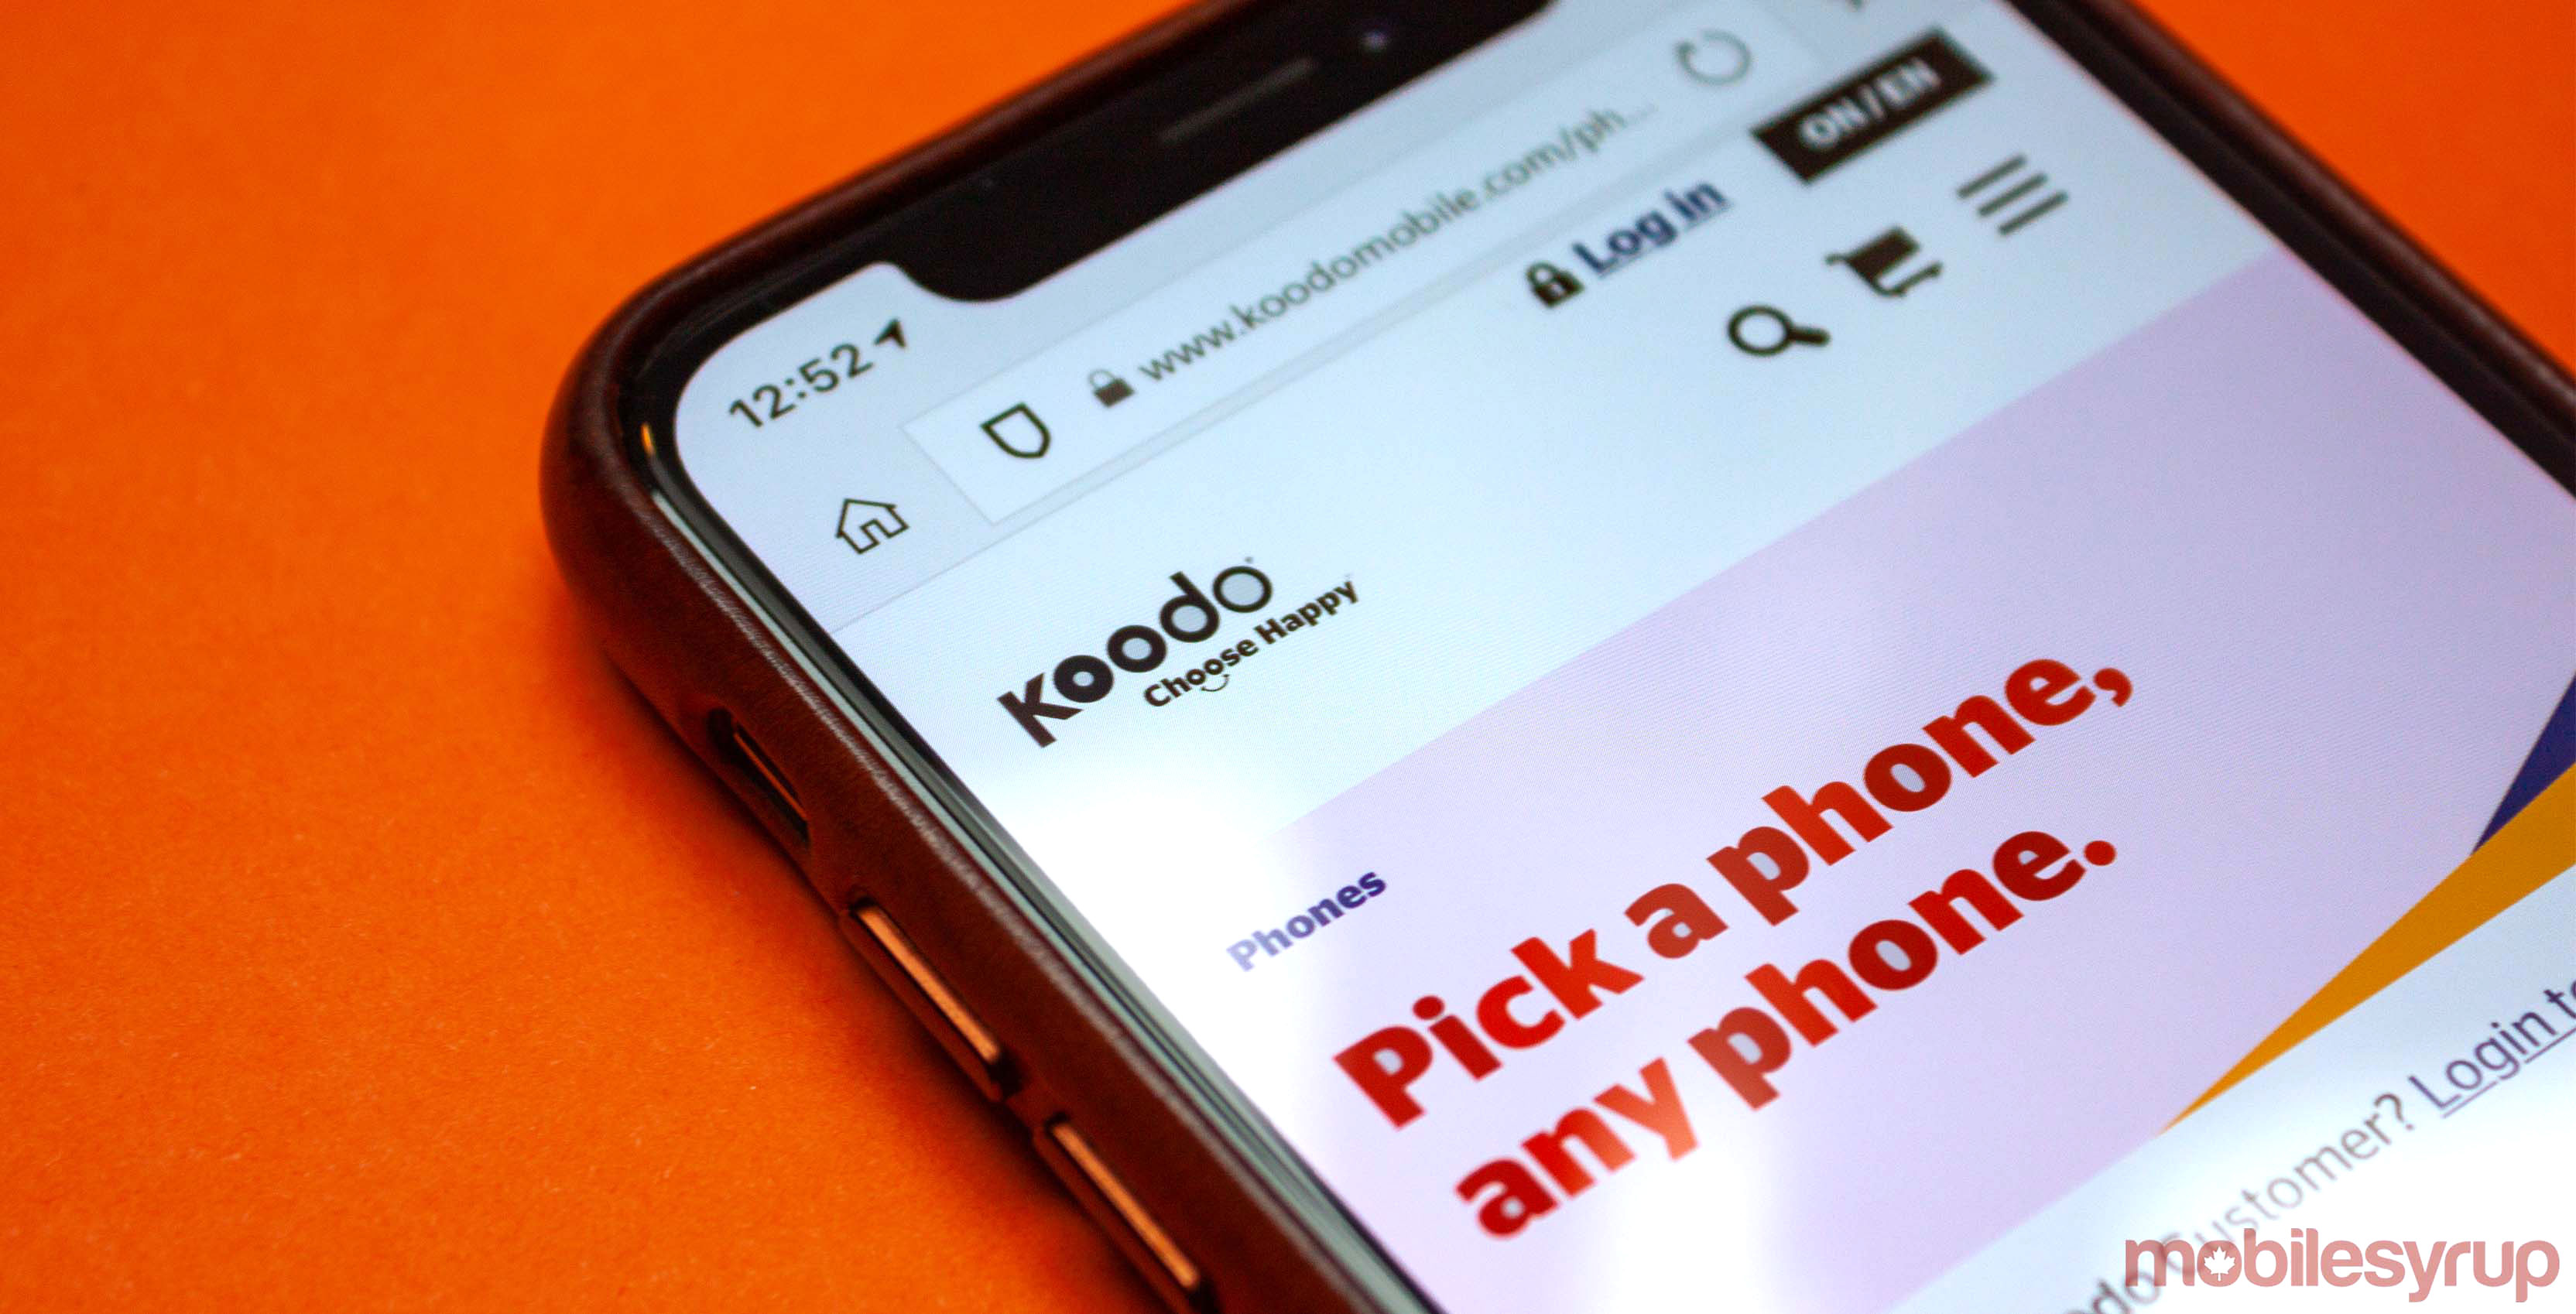 Koodo reportedly offering some customers 'winback' deals from $37/6GB to $52/12GB